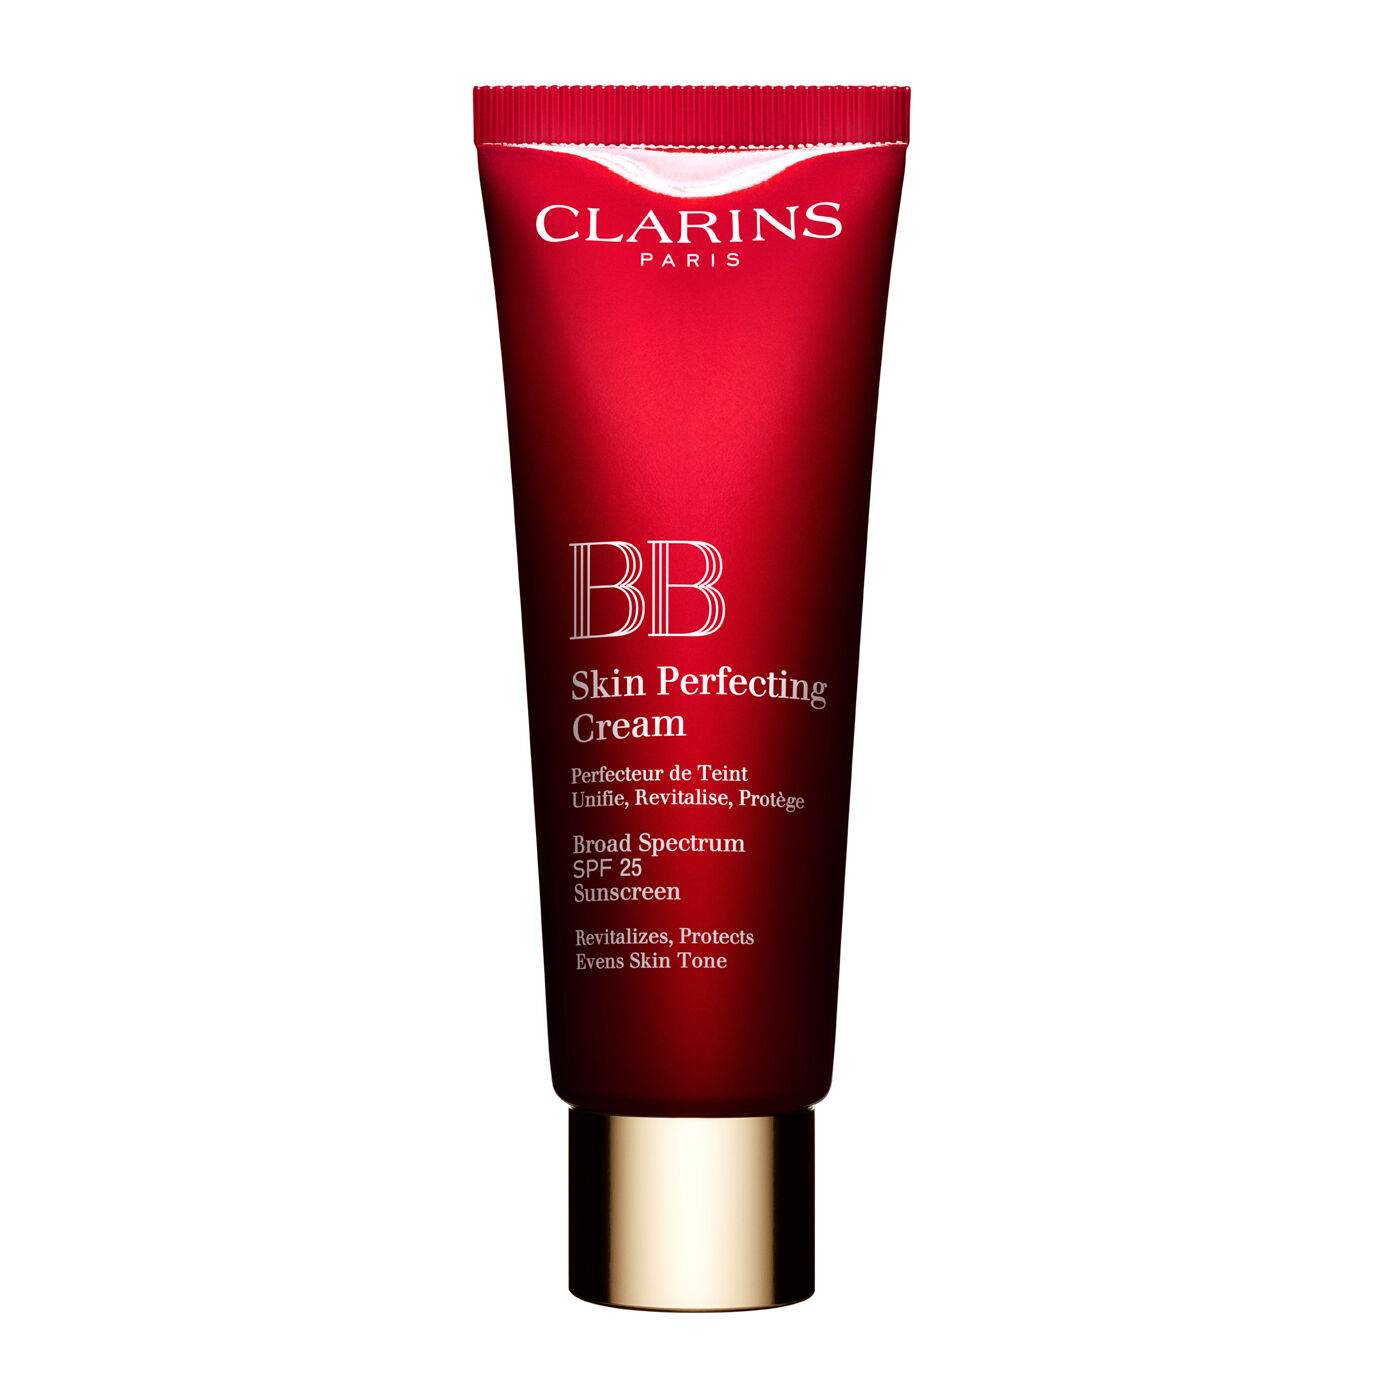 BB%20Skin%20Perfecting%20Cream%20SPF%2025%2000